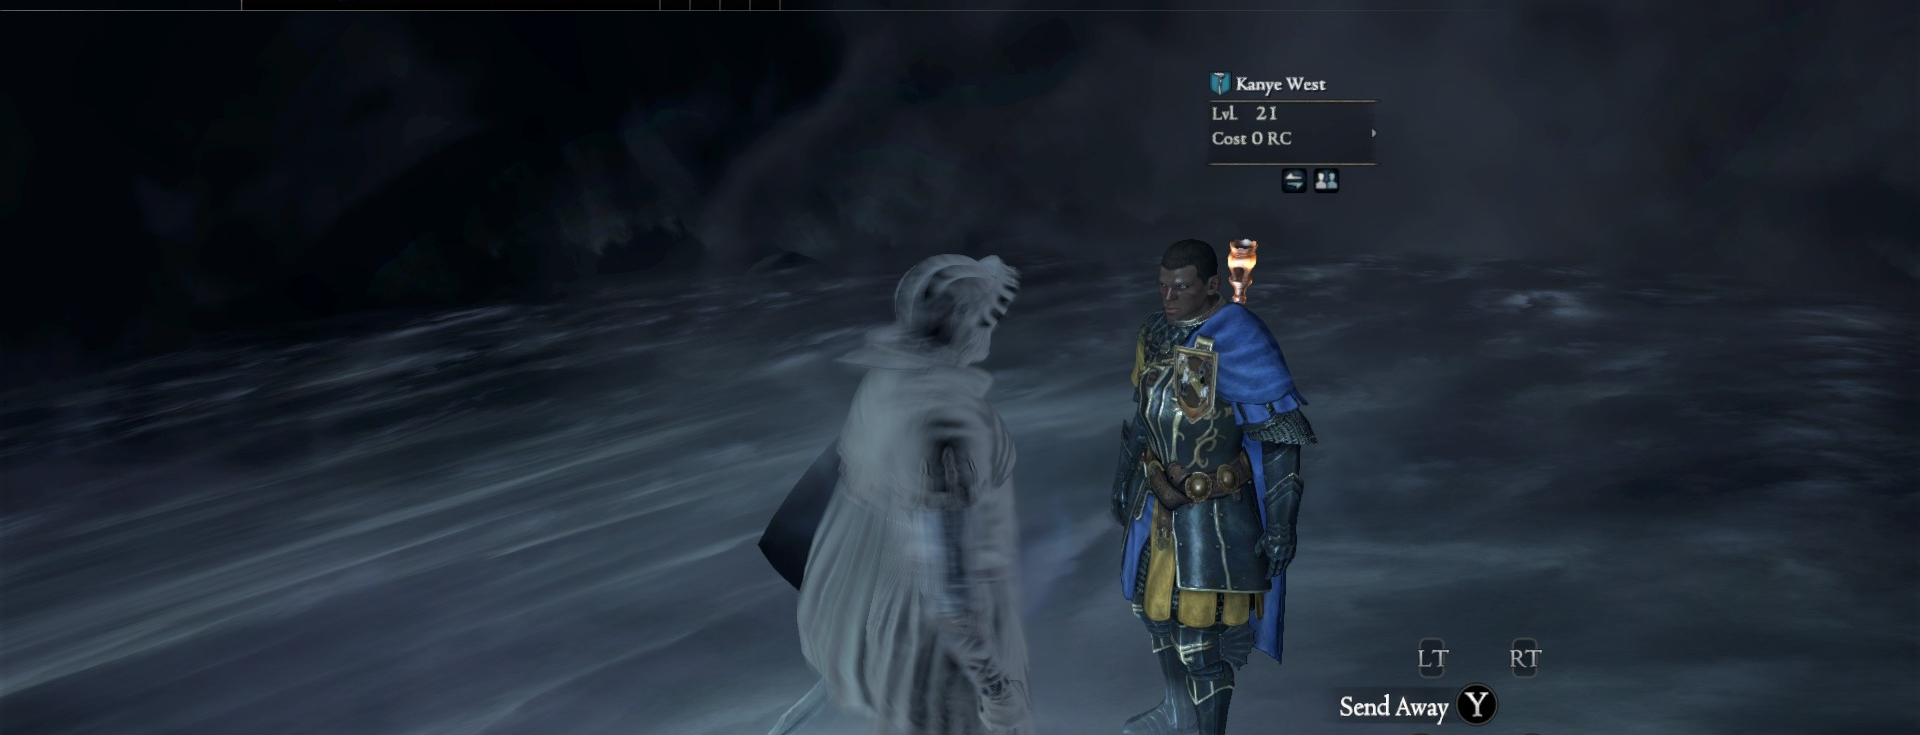 Dragon's Dogma has an interesting cast of characters....